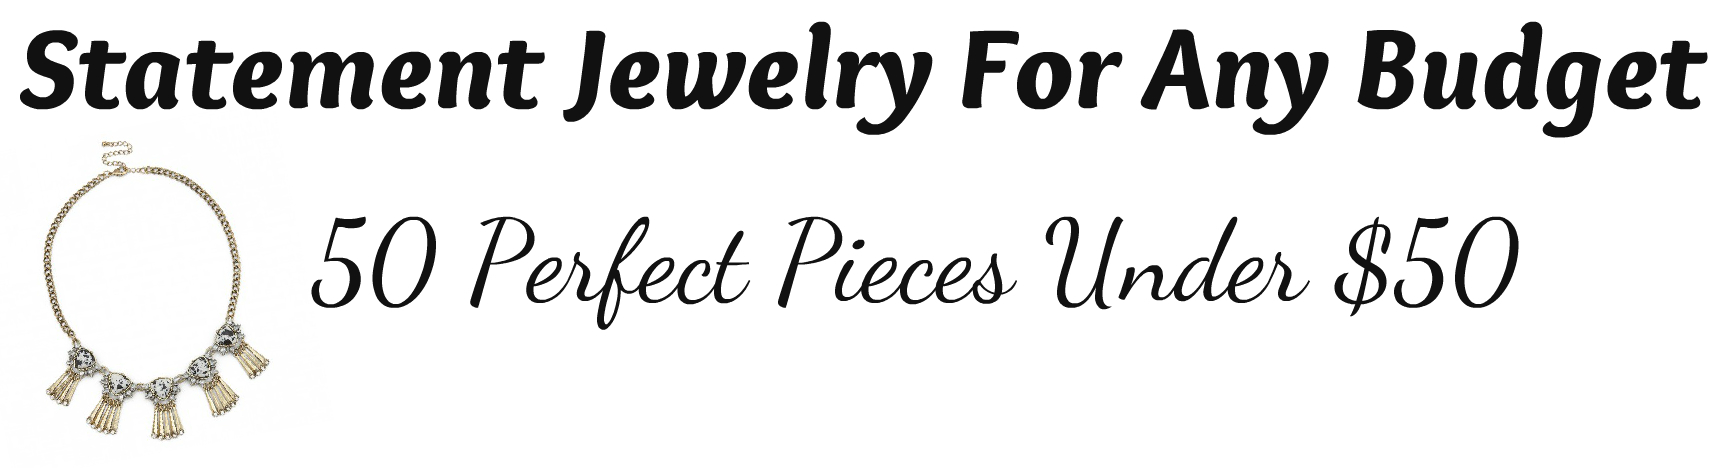 cheap statement necklaces, where to buy cheap statement necklace, high quality costume jewelry, statement jewelry trends, jewelry trends 2017, how to protect fake jewelry, how to prevent green skin from jewelry, cheap necklaces